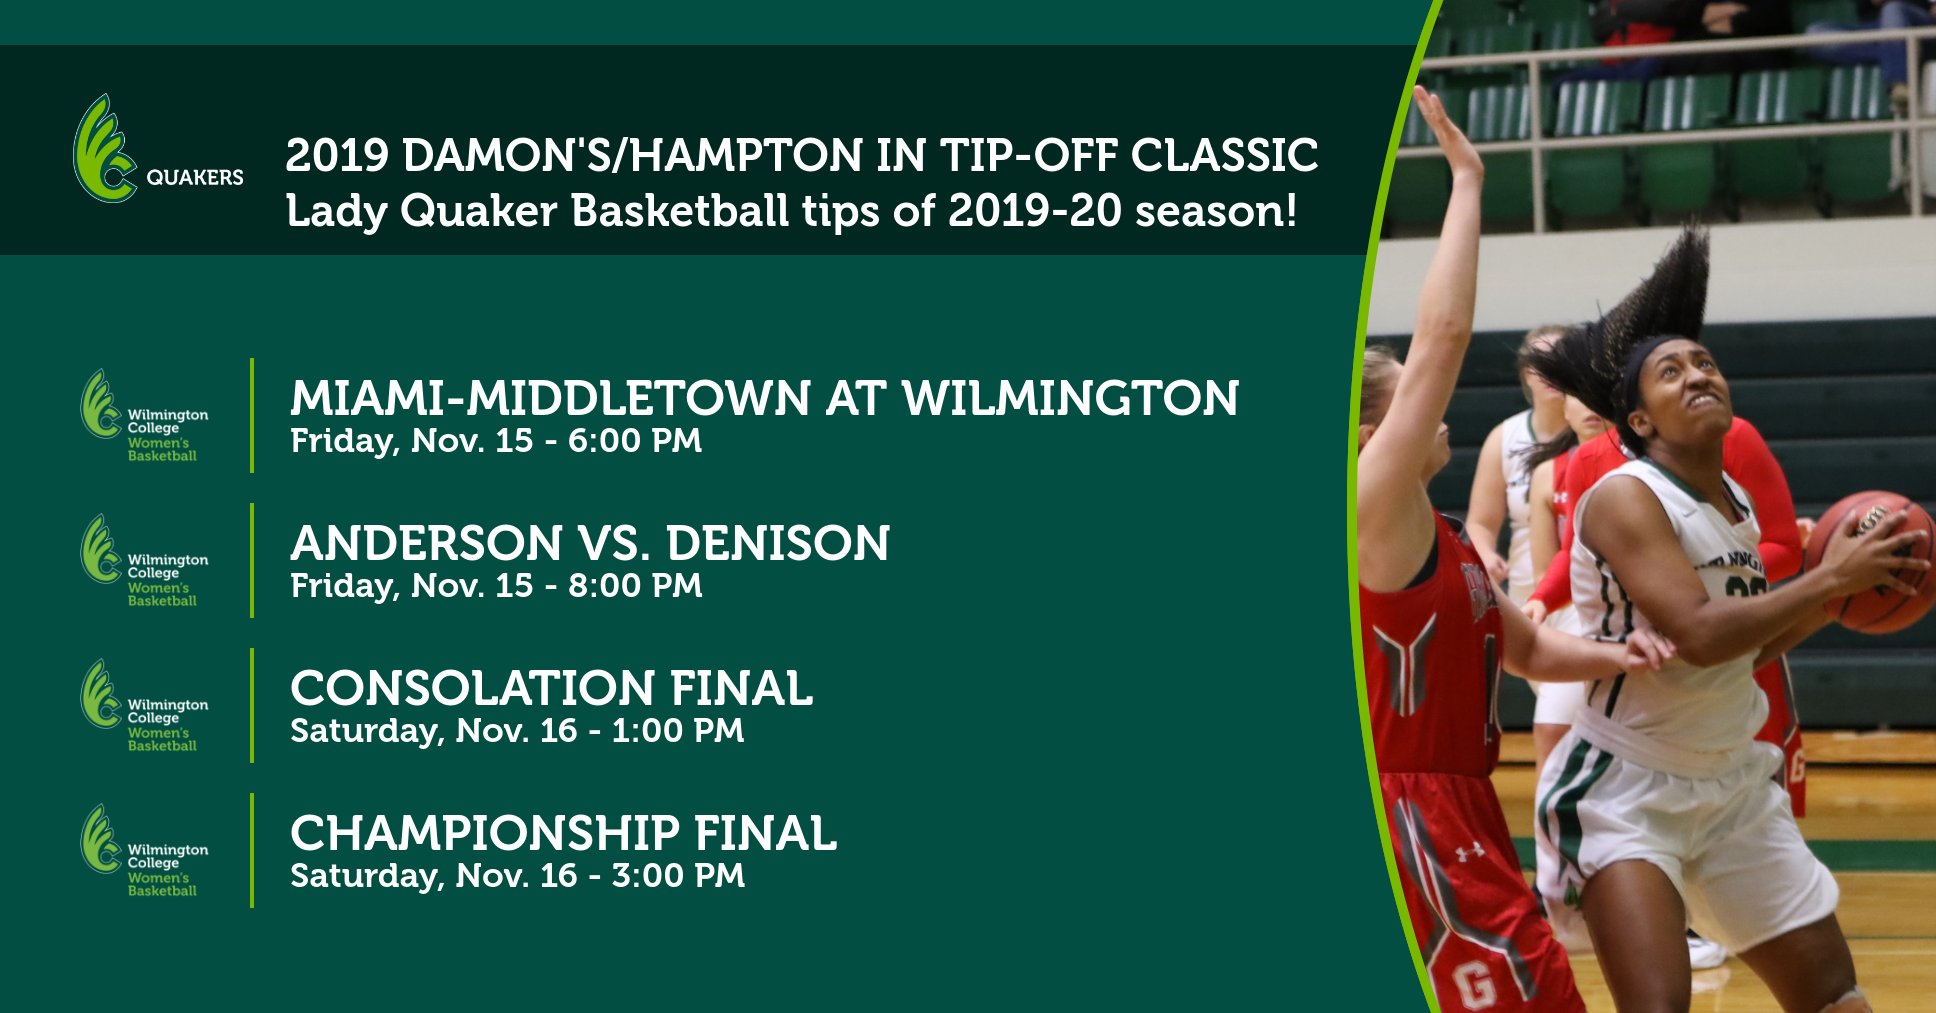 Women's Basketball Opens Season with 28th Annual Damon's/Hampton Inn Tip-Off Tournament